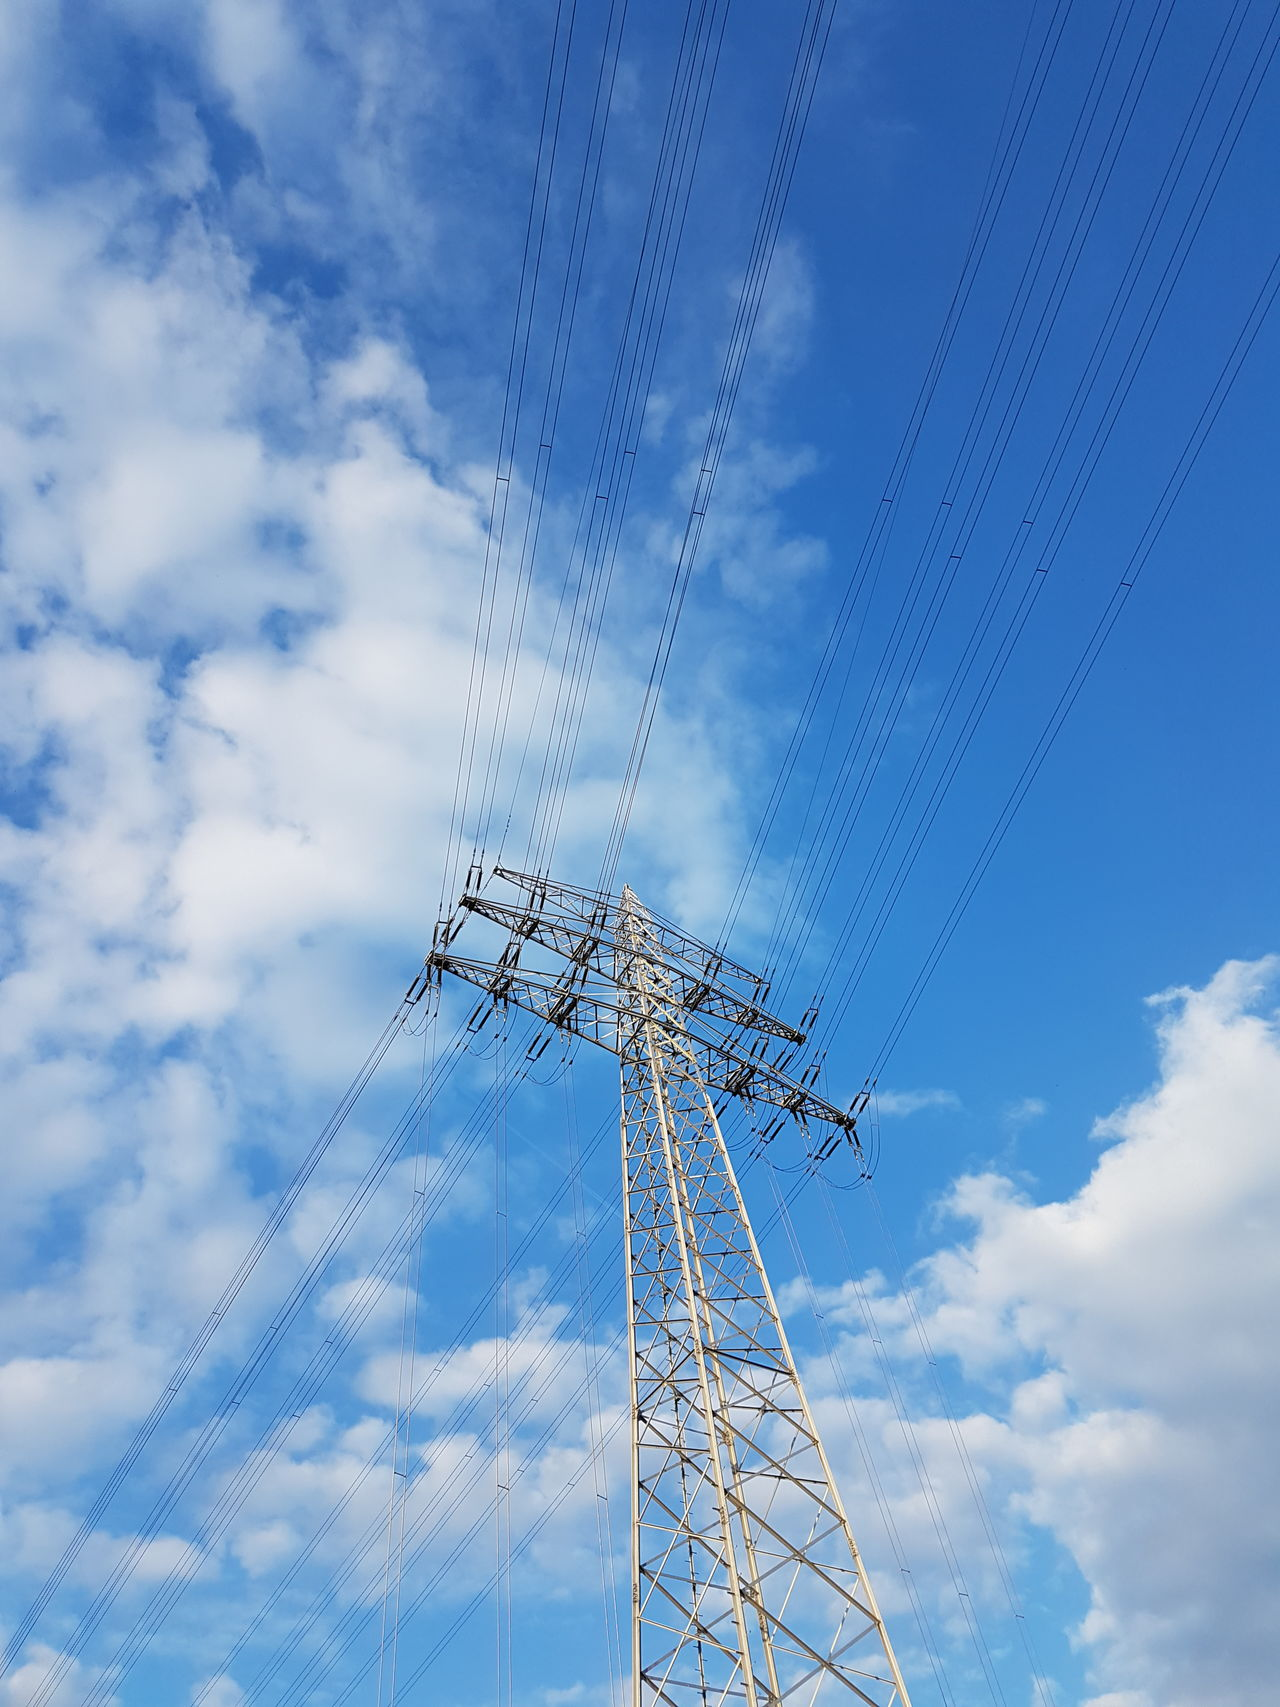 Cloud - Sky No People Technology Connection Cable Blue Day Outdoors Sky Close-up Electriccables Electricity Tower Electric Tower  GERMANY🇩🇪DEUTSCHERLAND@ Electricity  Low Angle View